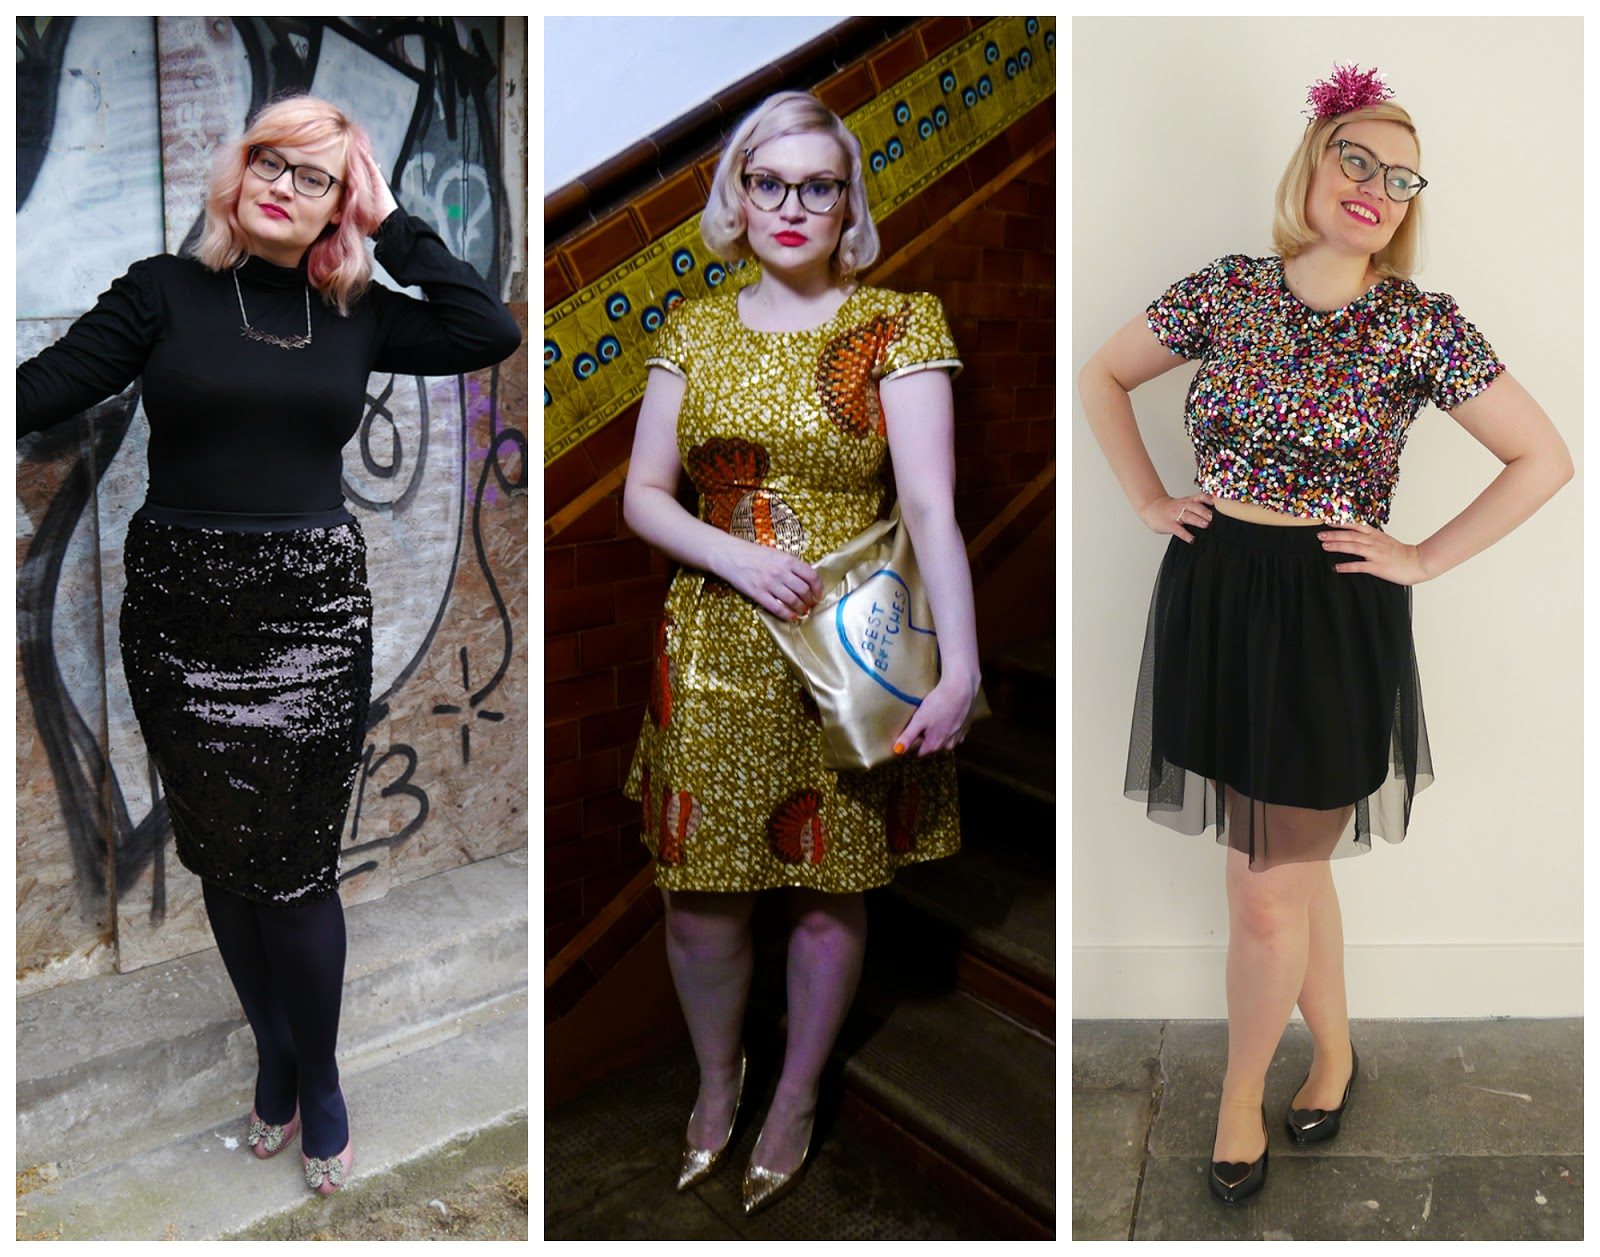 Styled by Kimberley, what kimberley wore, outfit round up 2015, blogger outfits 2015, going out outdits, Lady muck neckalce, black sequin skirt, Rowan Joy dress, multi coloured sequin top, party outfits 2015, Scottish bloggers, scottish blogging duo, blogging duo, Wardrobe Conversations